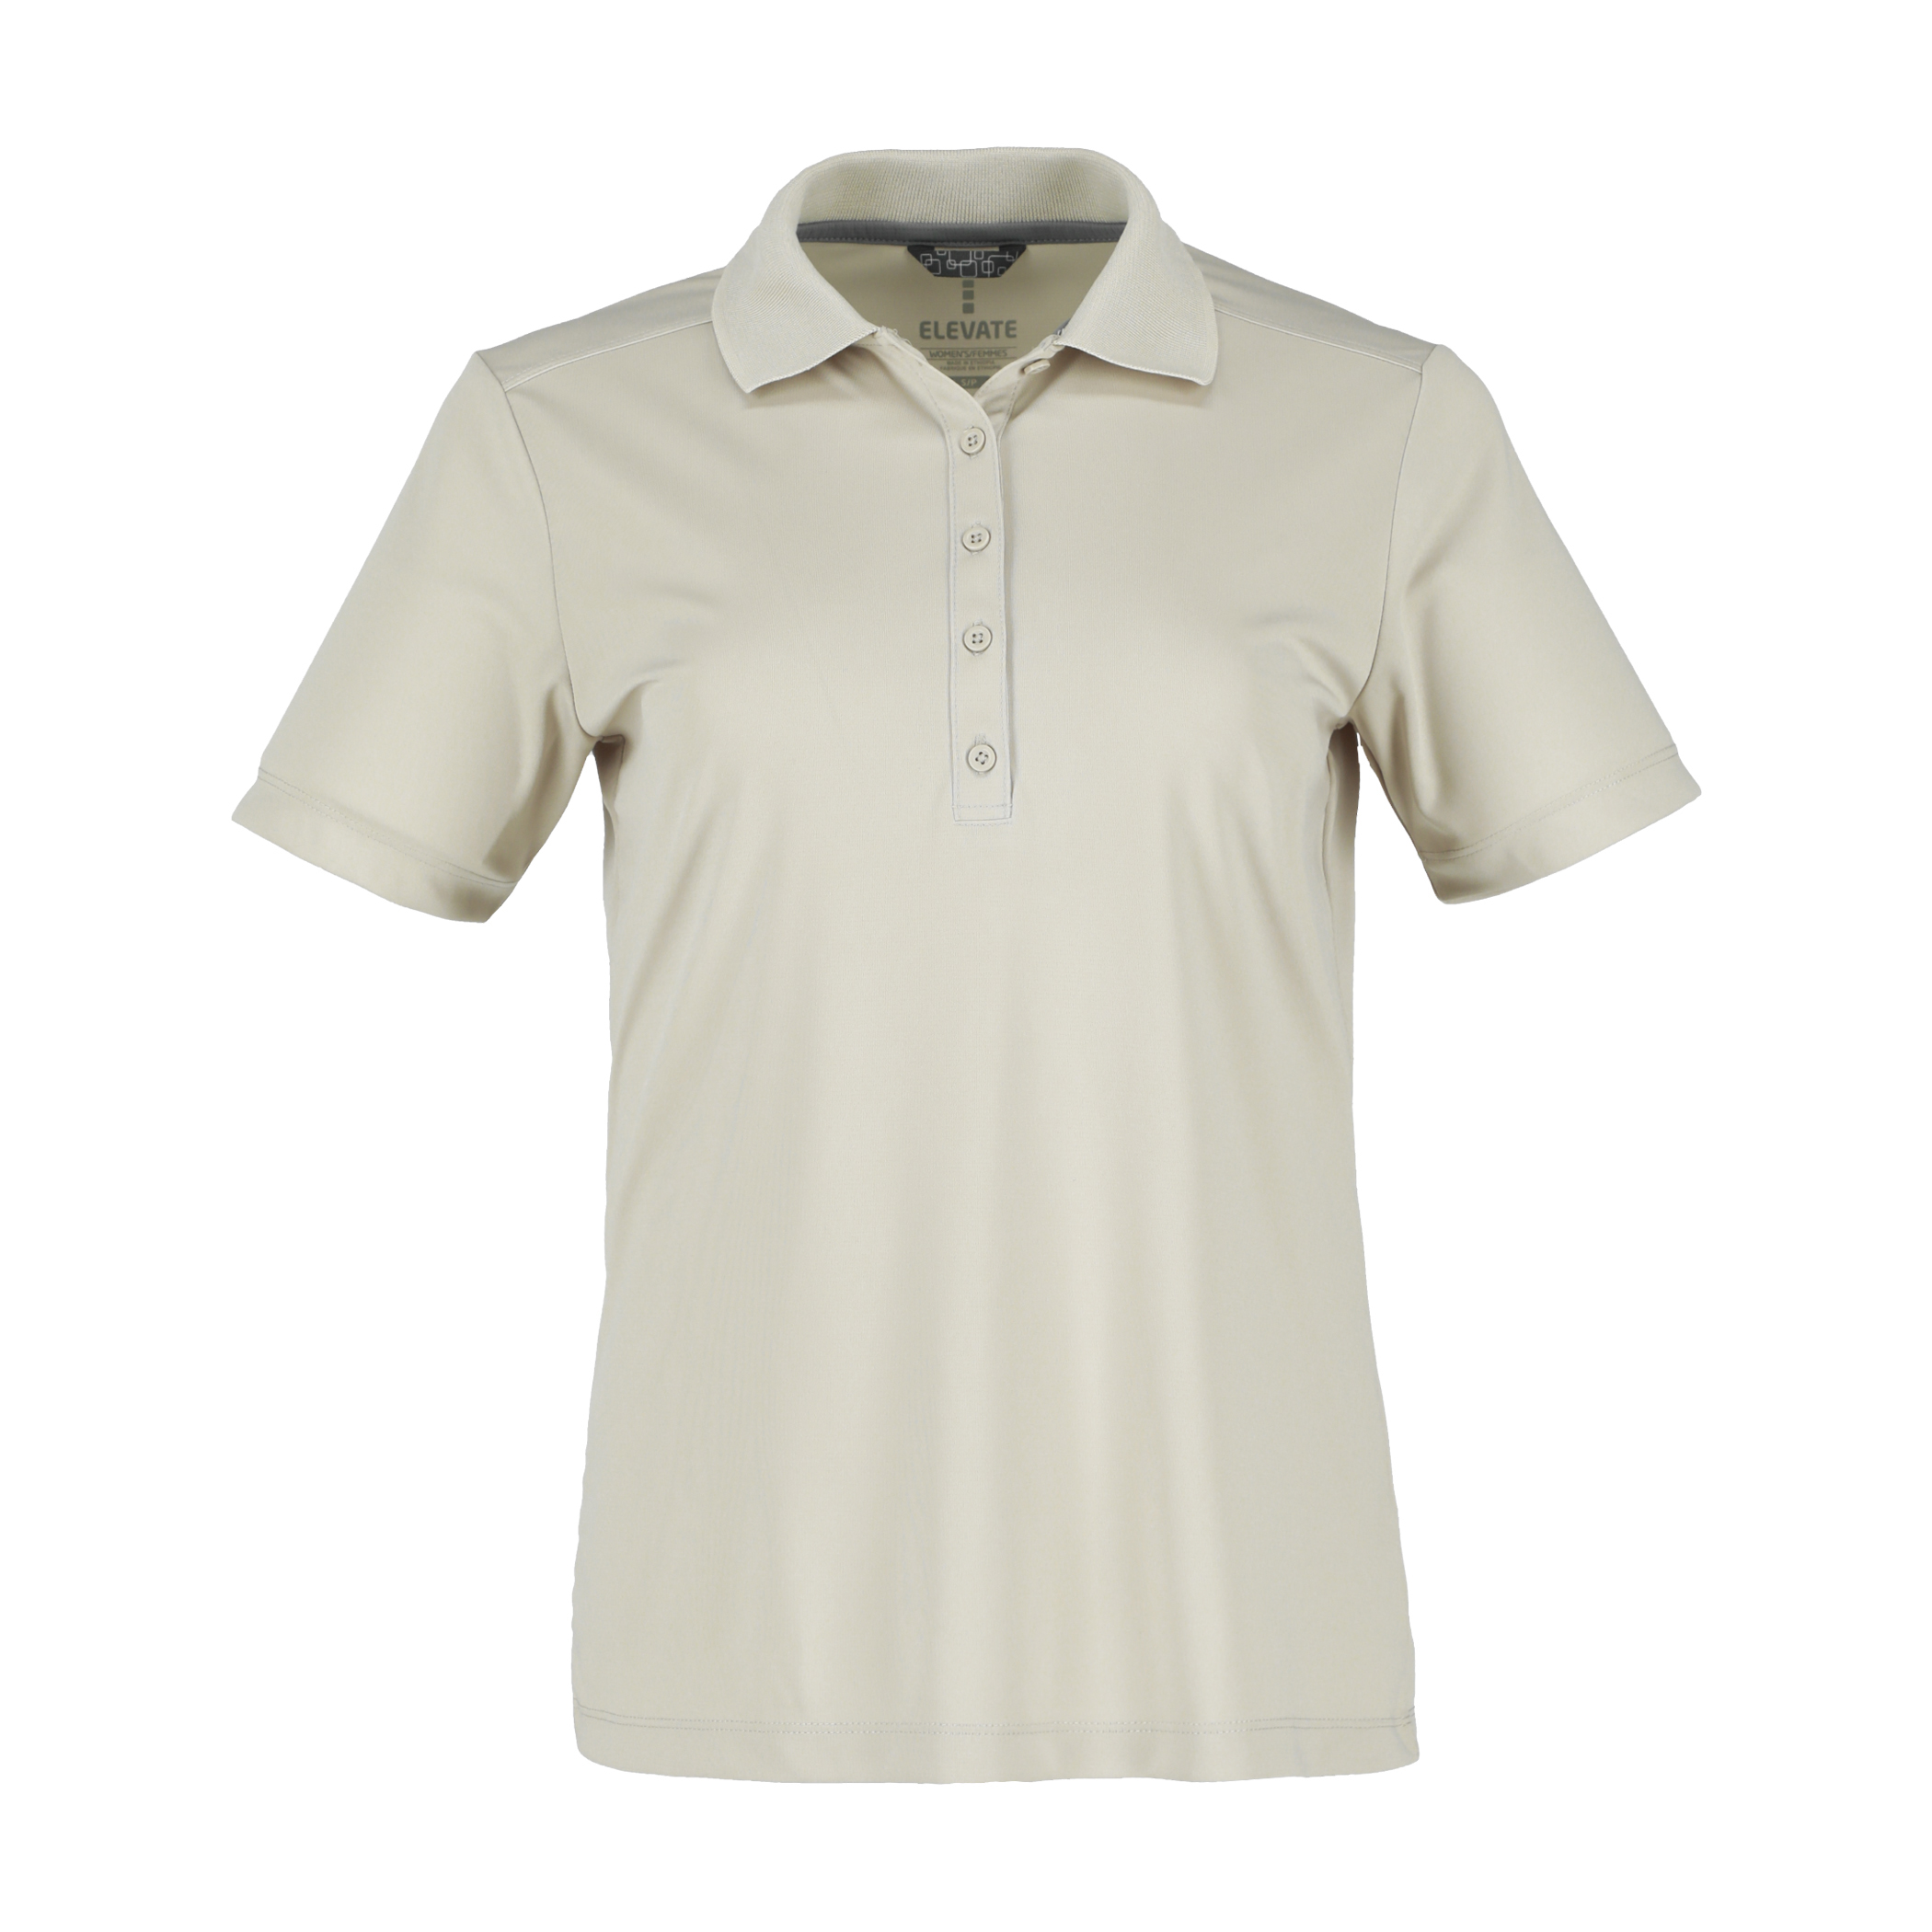 Dade Short Sleeve Women's Polo Shirt, #96398 - Embroidered